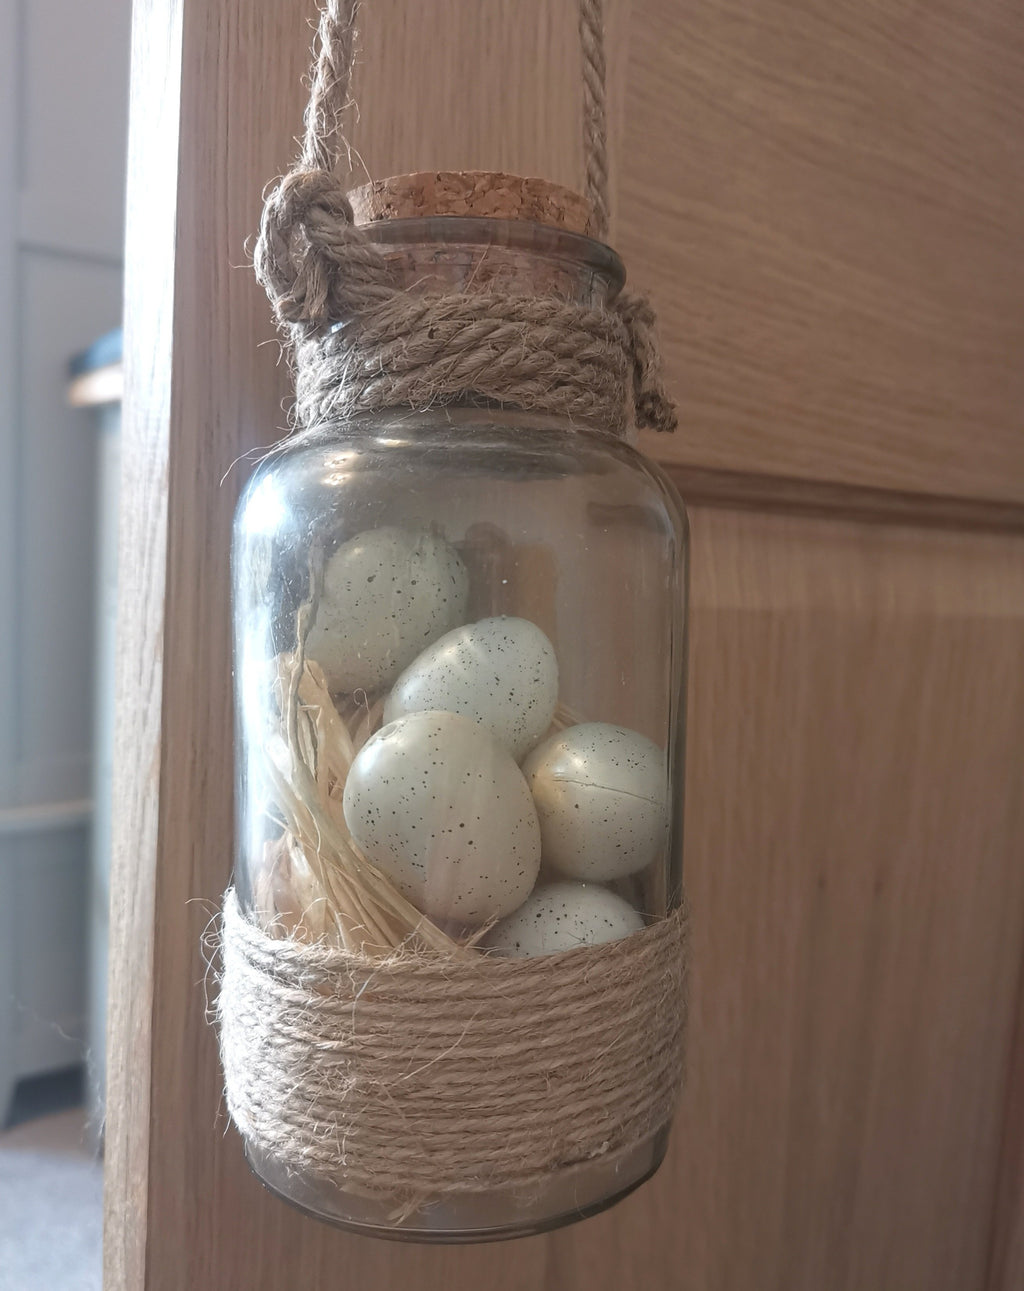 Easter Egg Jar Decor - The Burrow Interiors